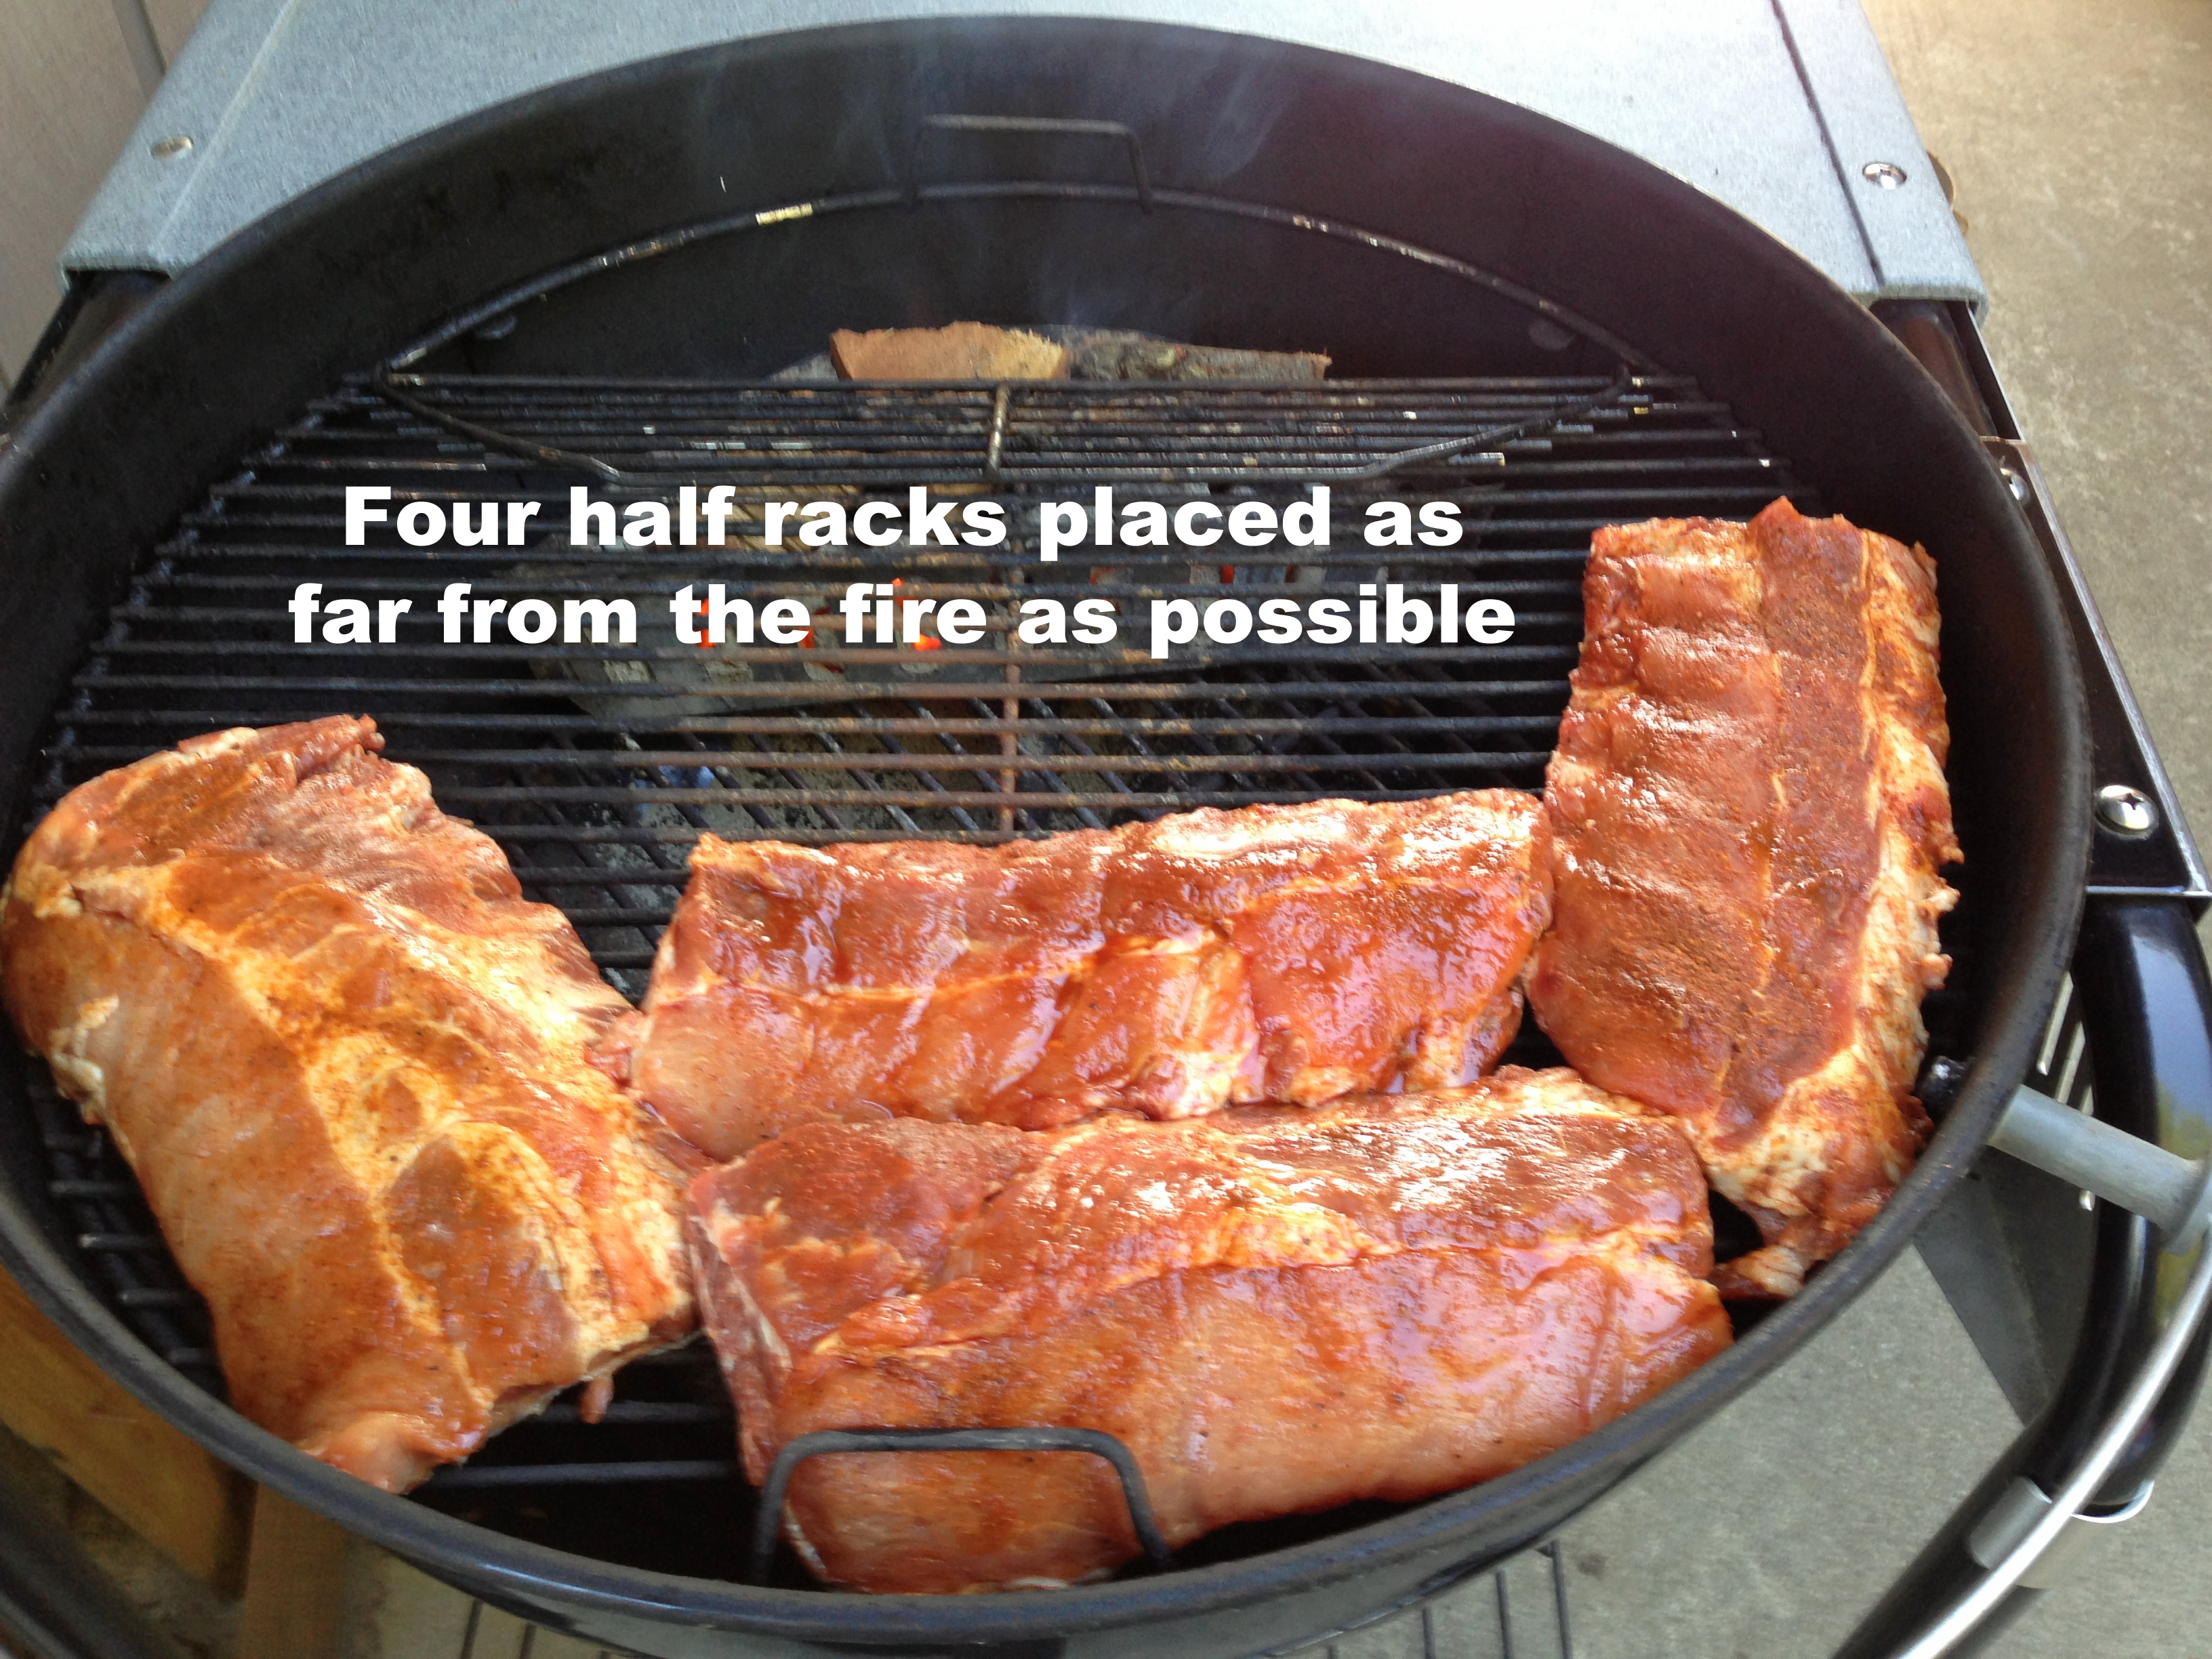 Smoking Ribs on a Weber Grill | How to Barbecue Baby Back